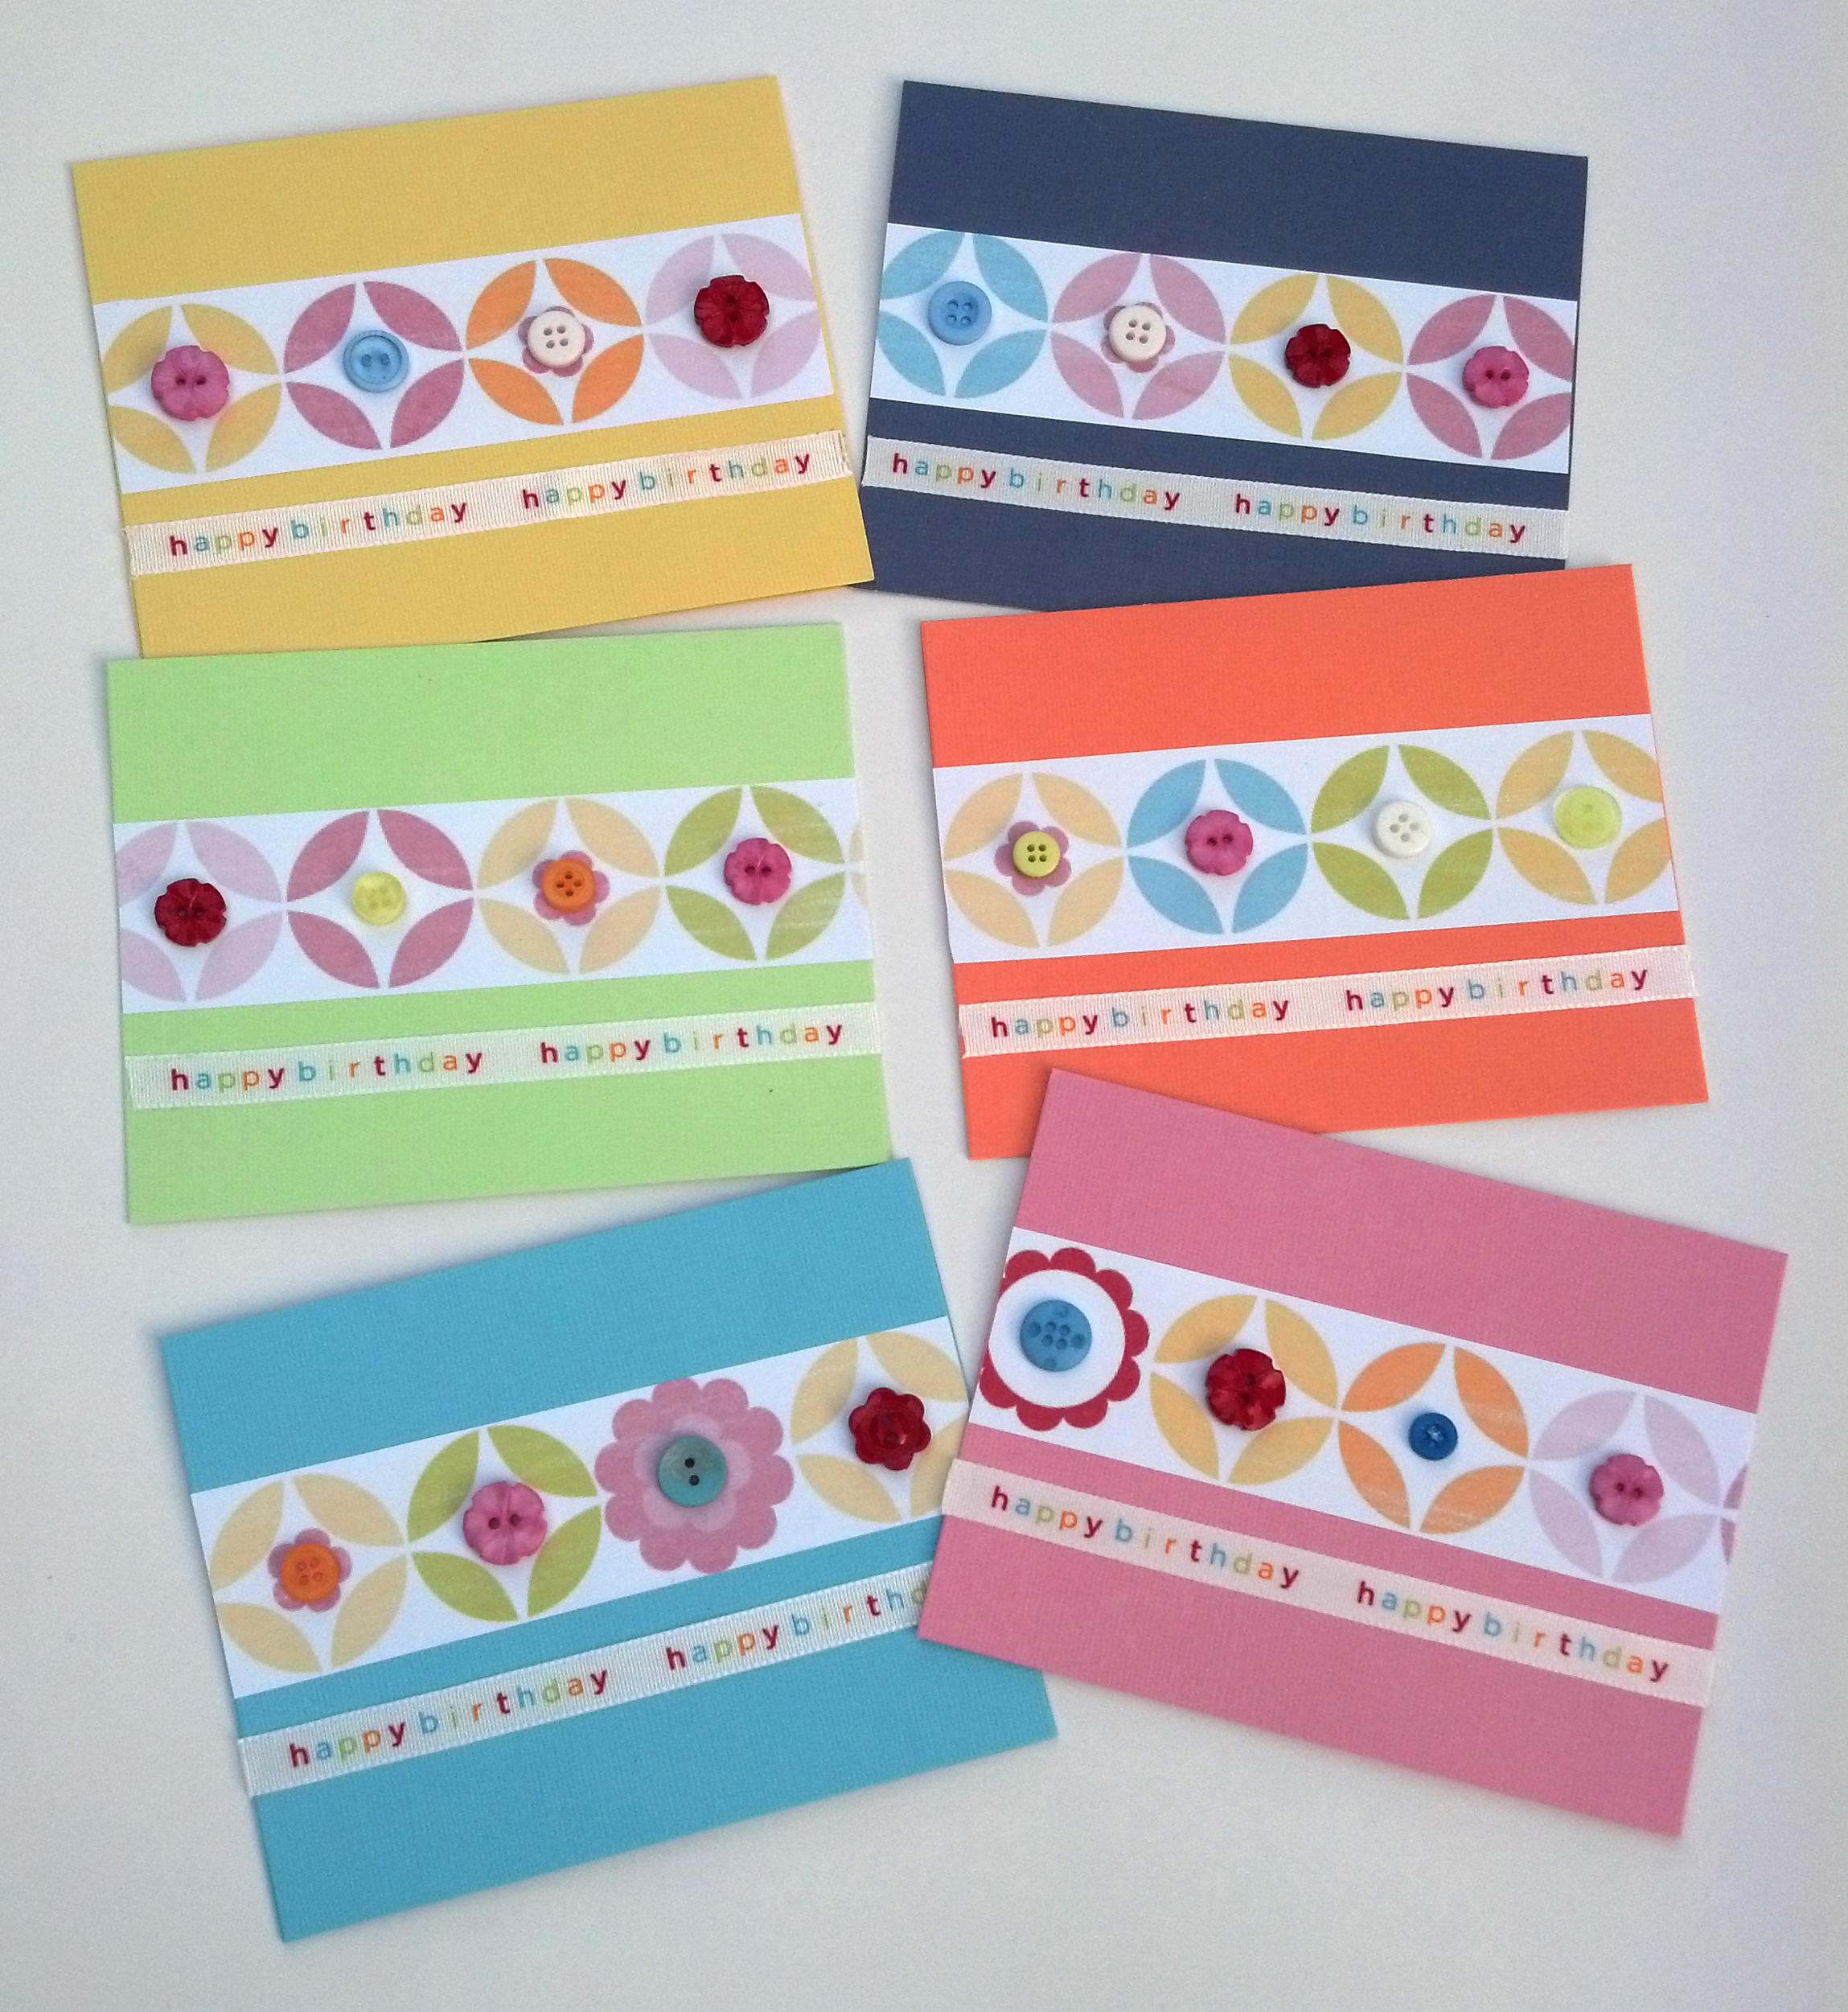 Handmade Birthday Geometric Button Greeting Cards With Envelopes On